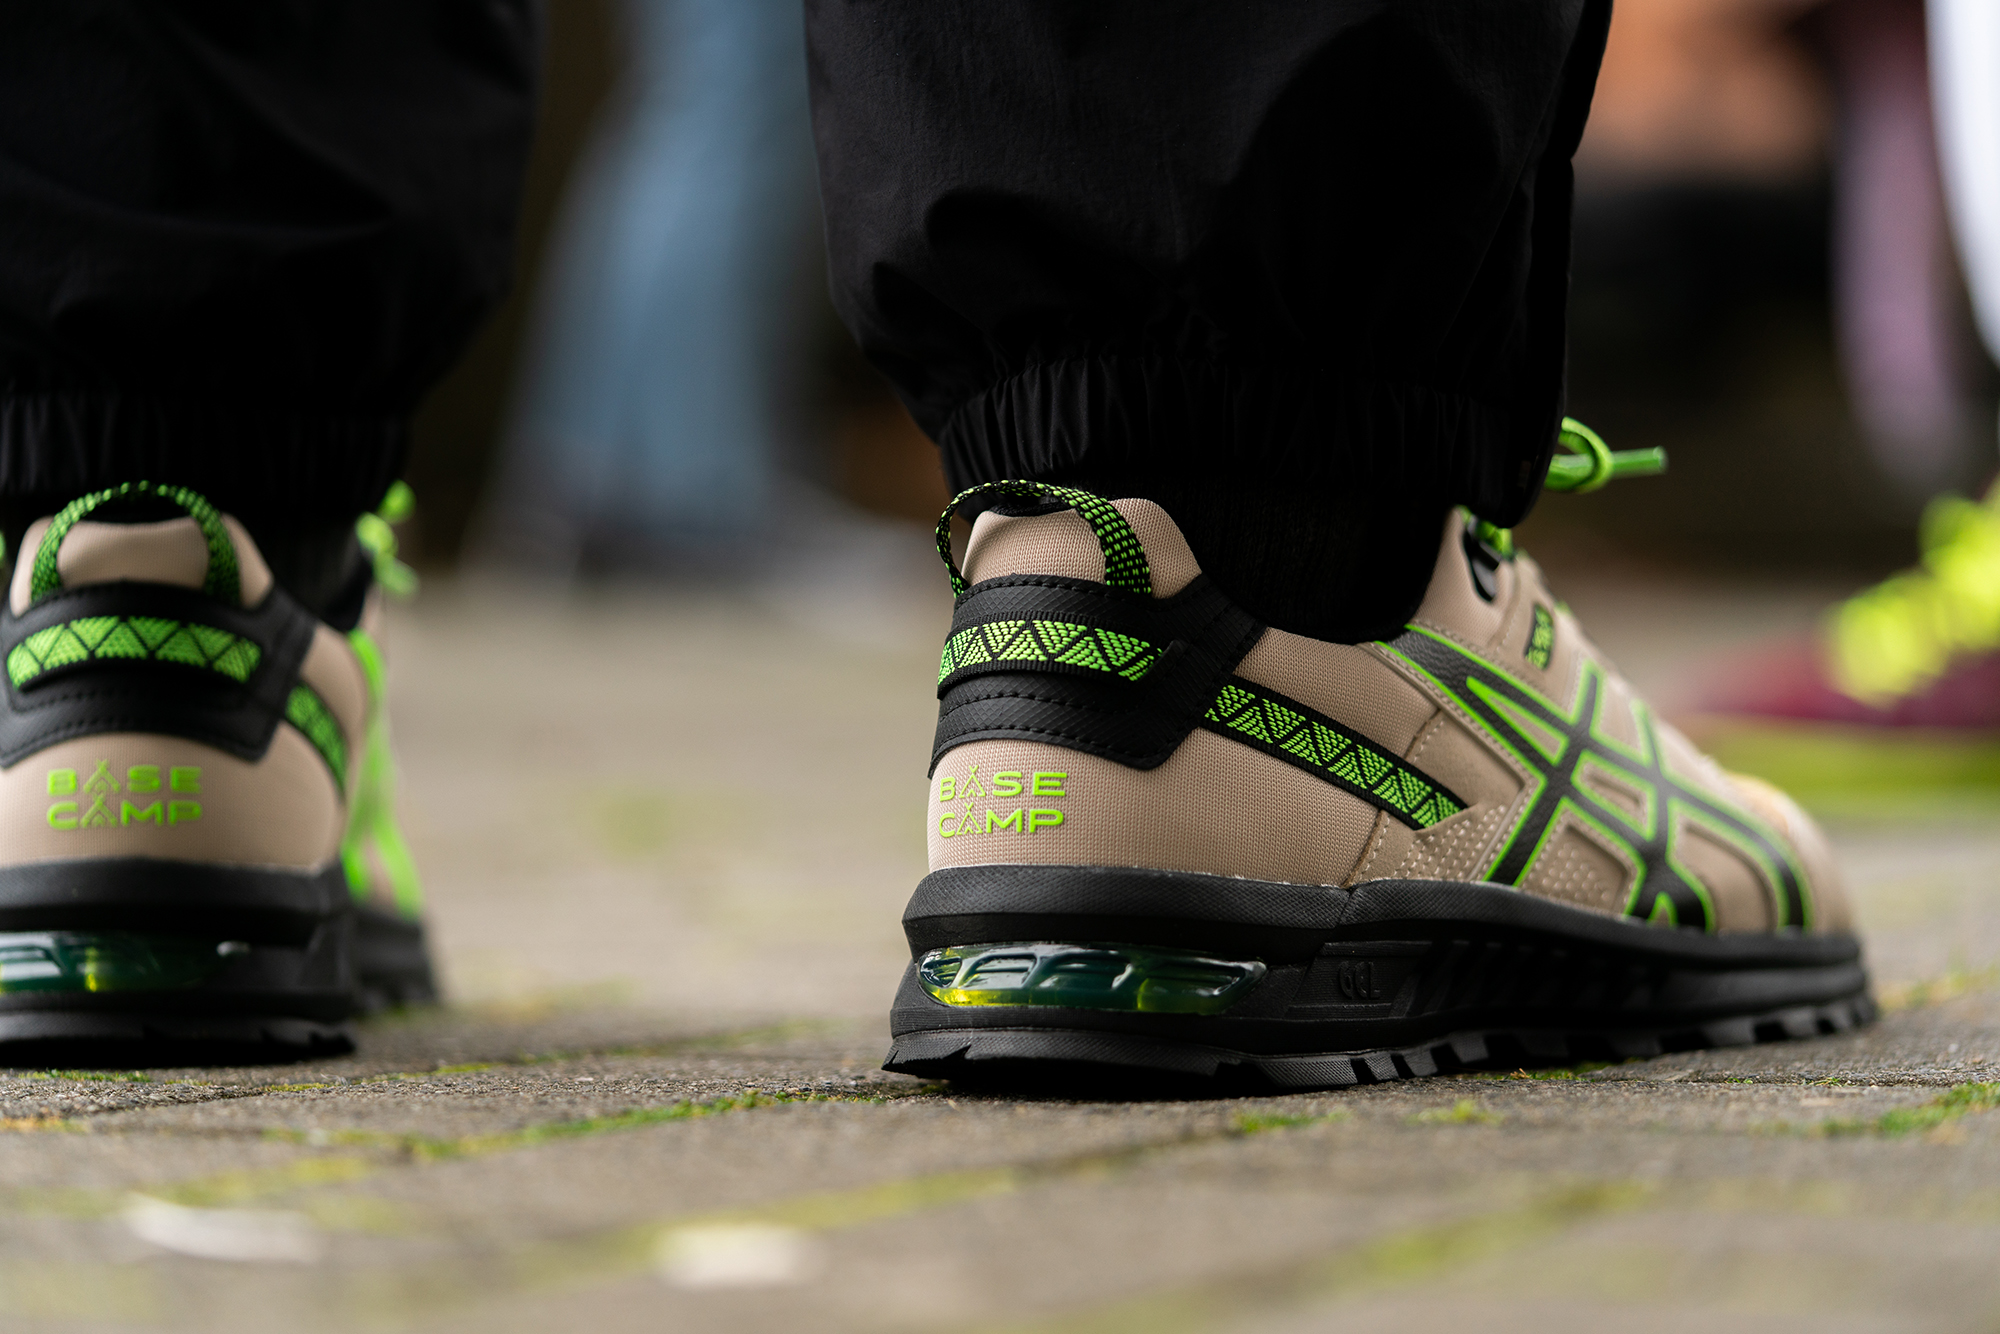 insertar Rizado Trampolín  Take To The Trails With Our ASICS 'Base Camp & Mission' Collection - size?  blog